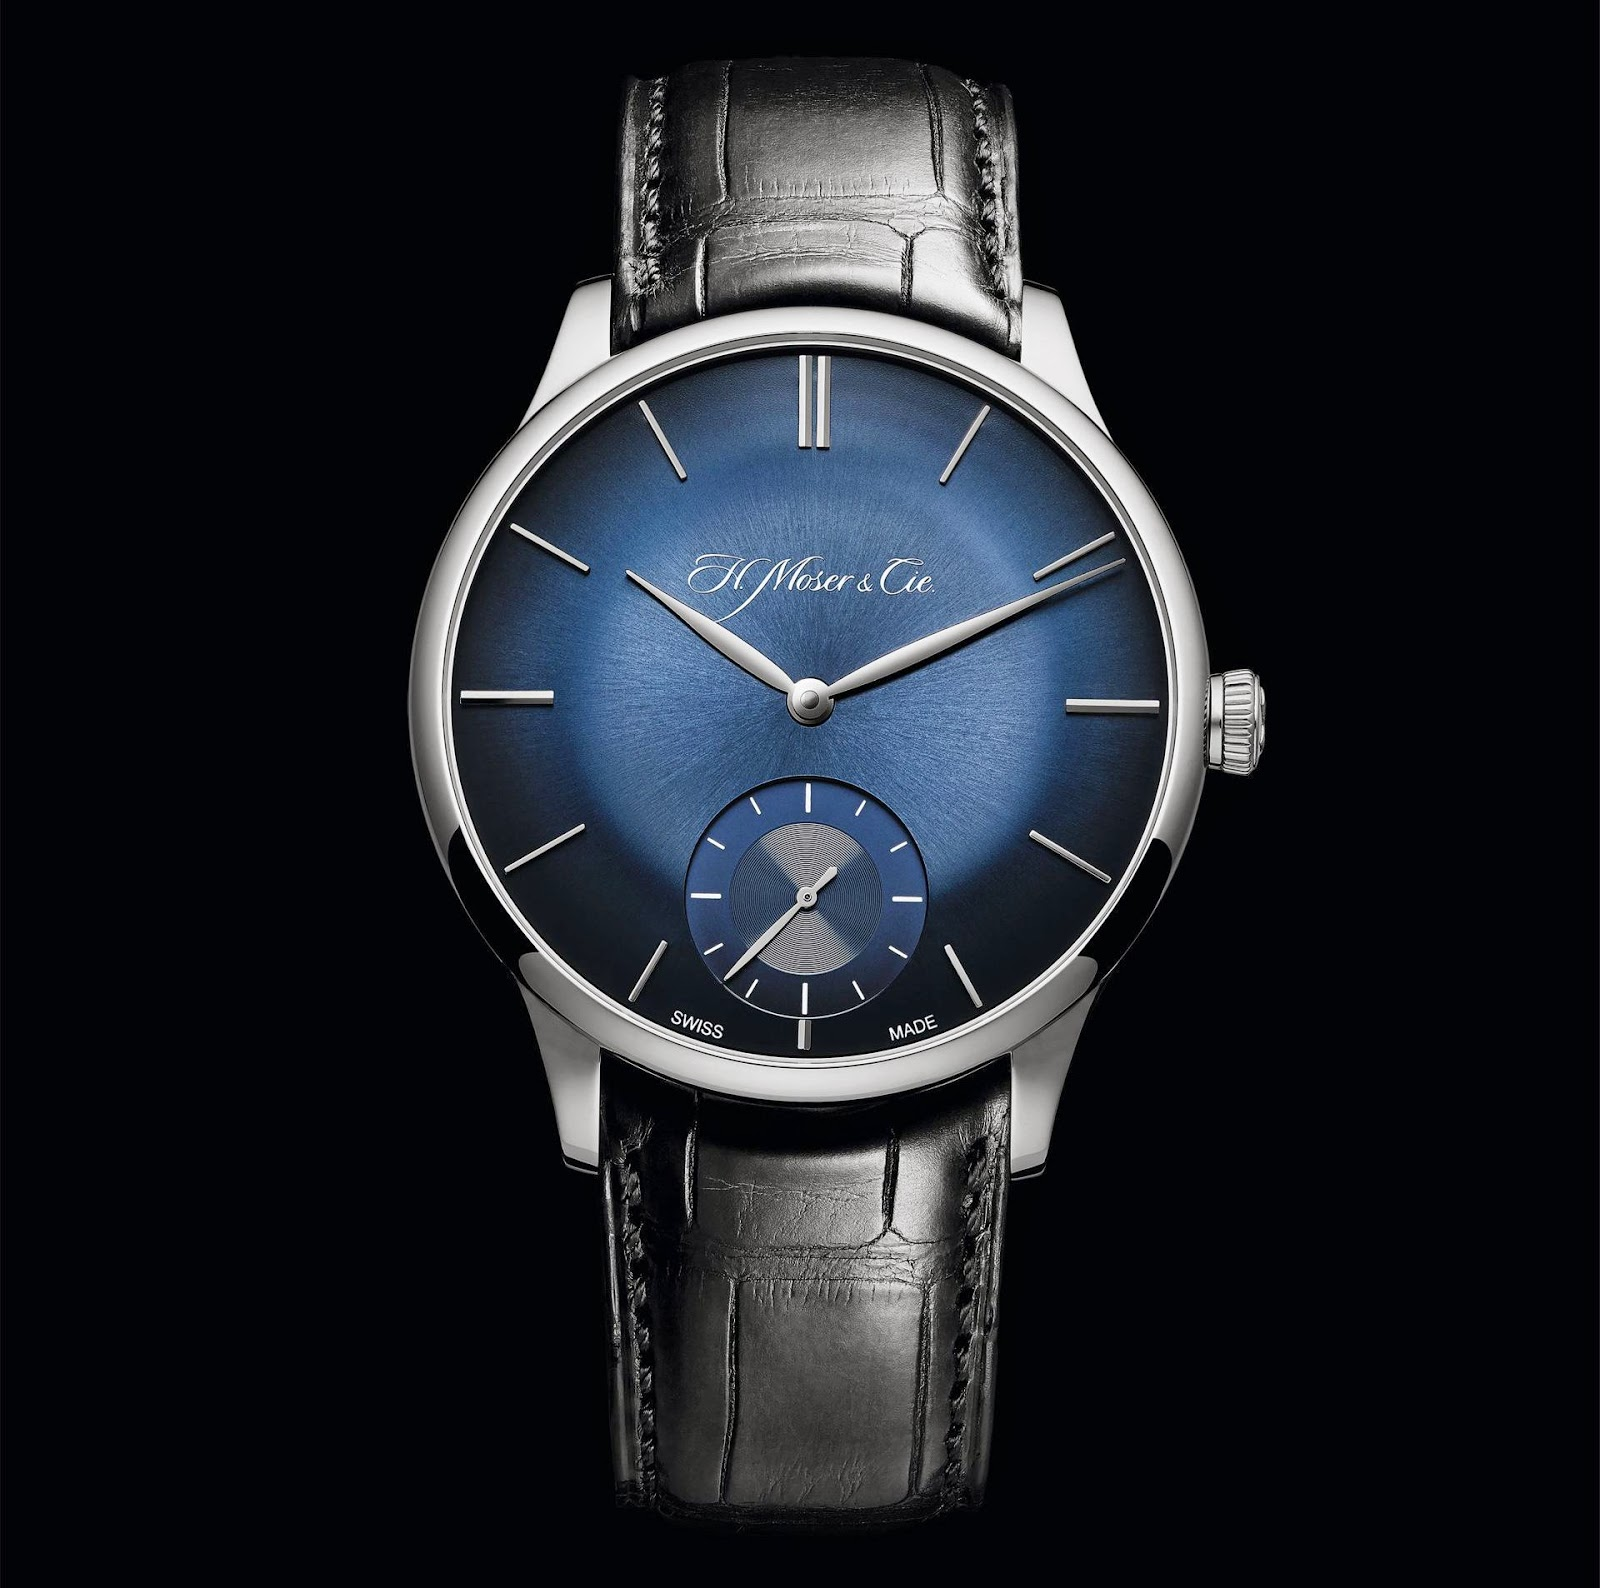 H. Moser & Cie Venturer Small Seconds Bucherer Edition